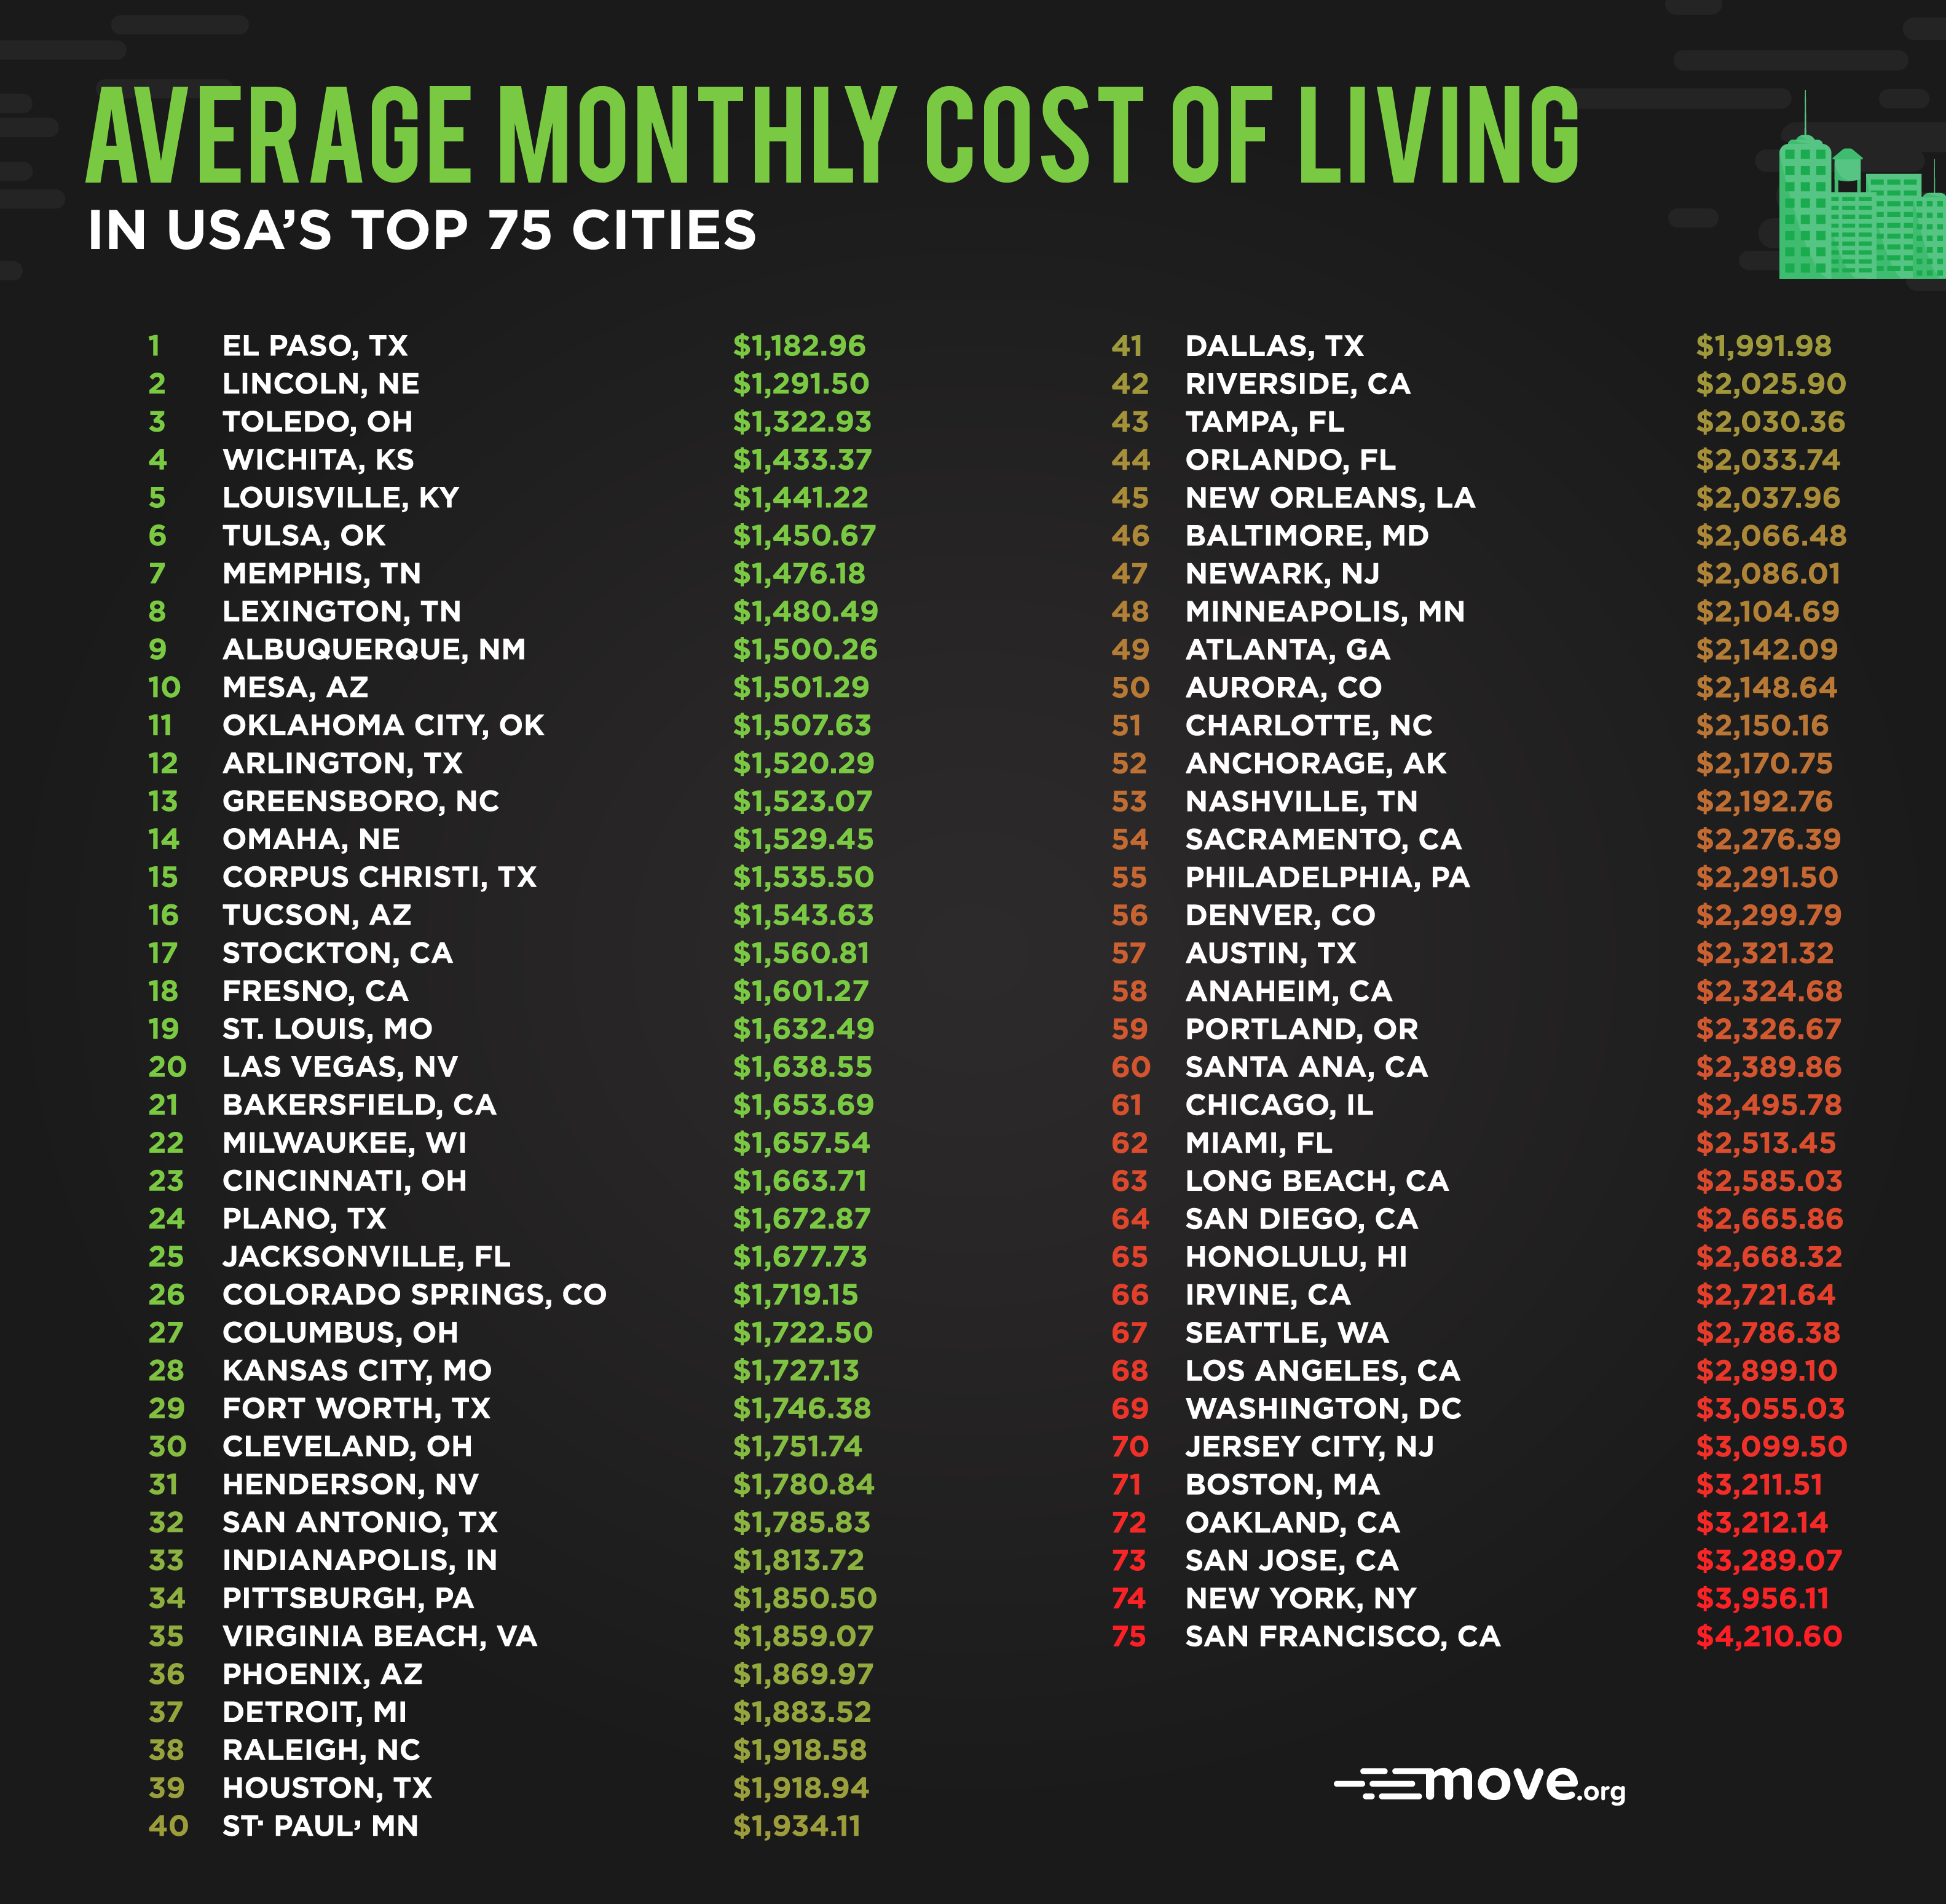 Top 10 US Cities With The Lowest Cost Of Living